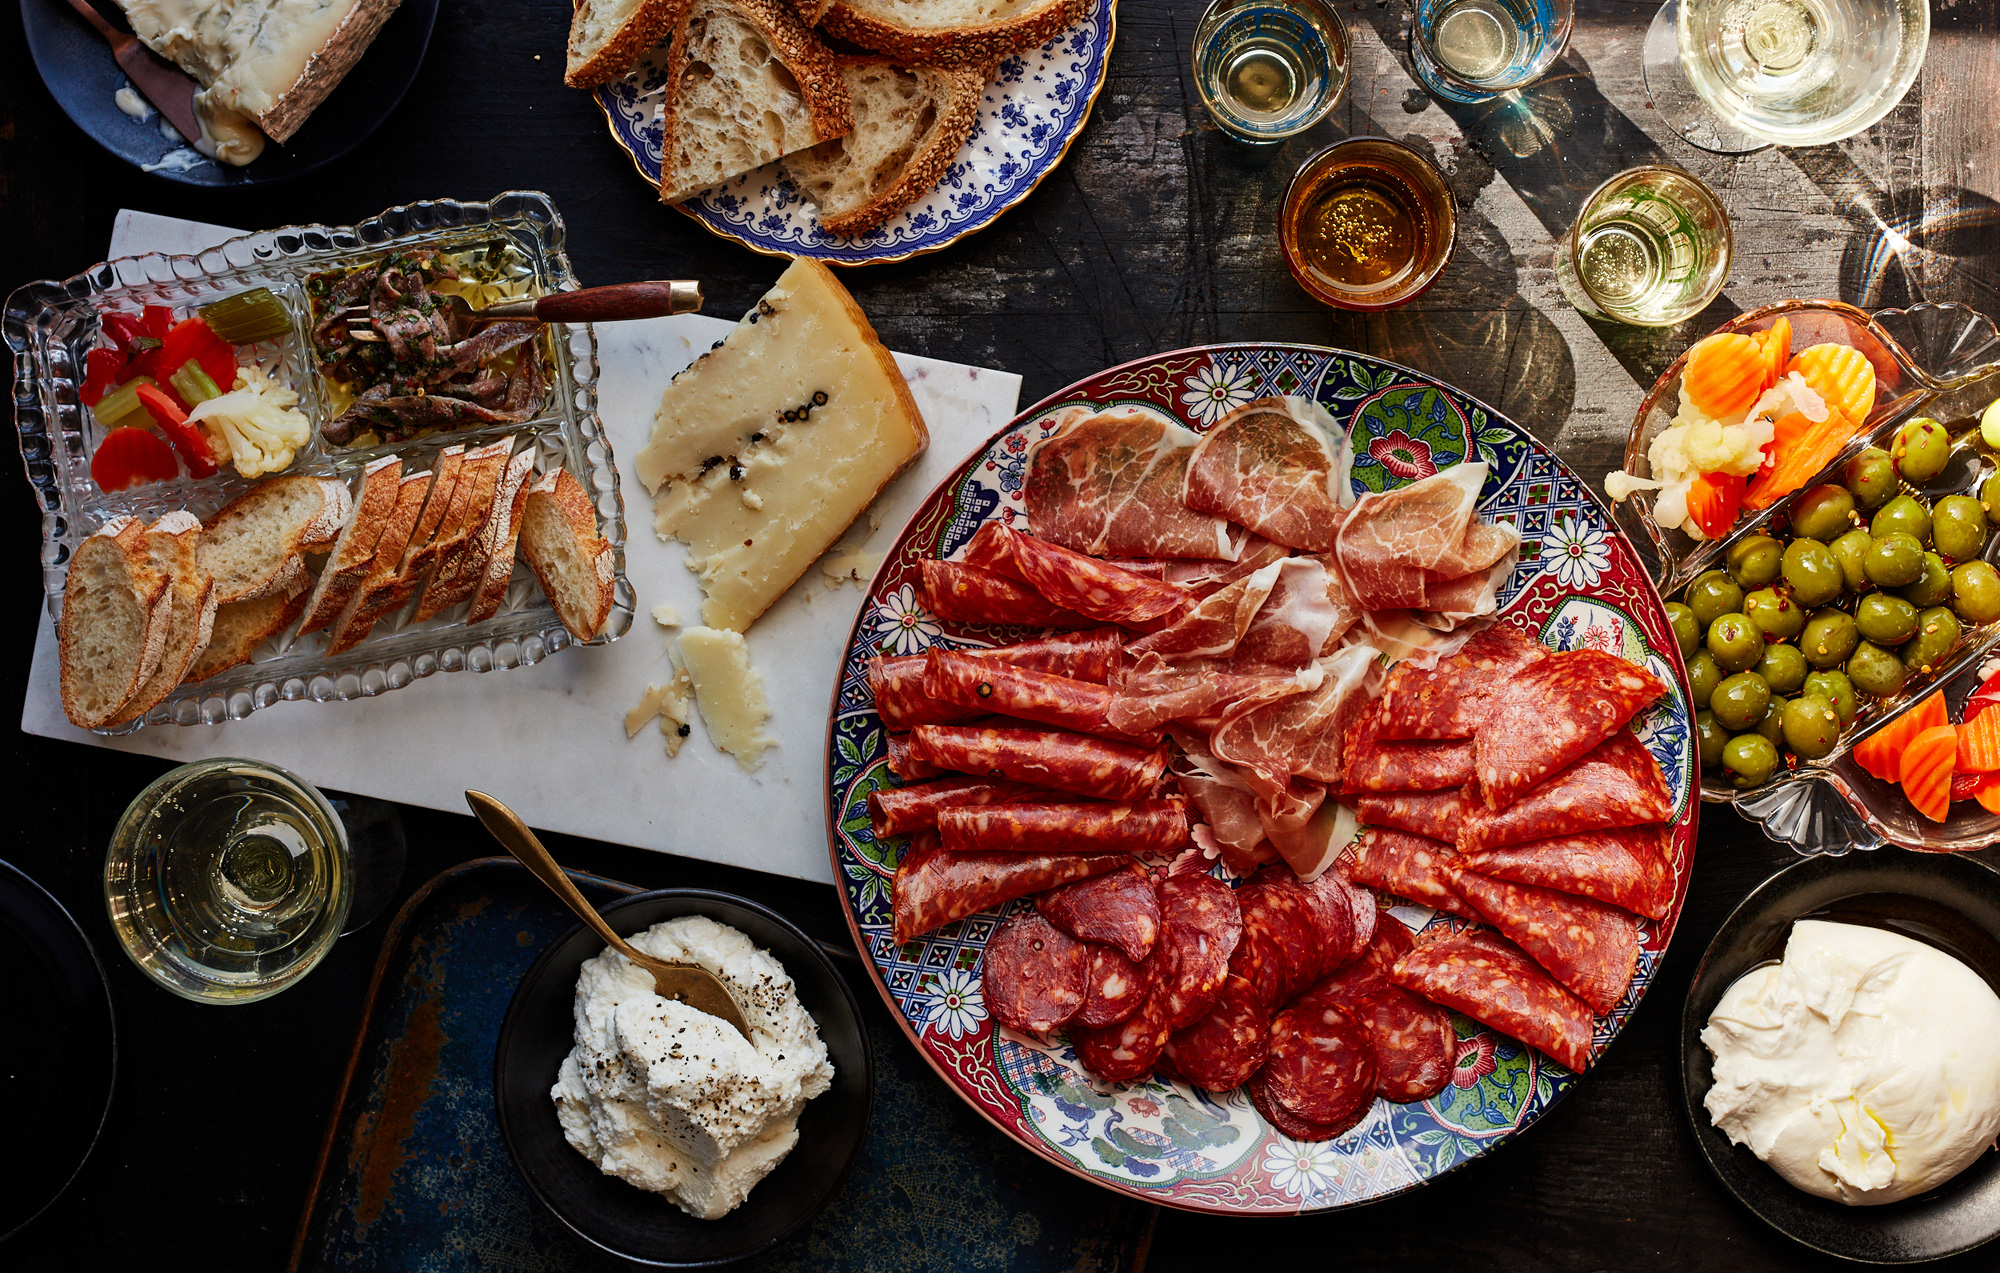 47_My_Salami_and_Cheese_Platter_J_Miller_1013